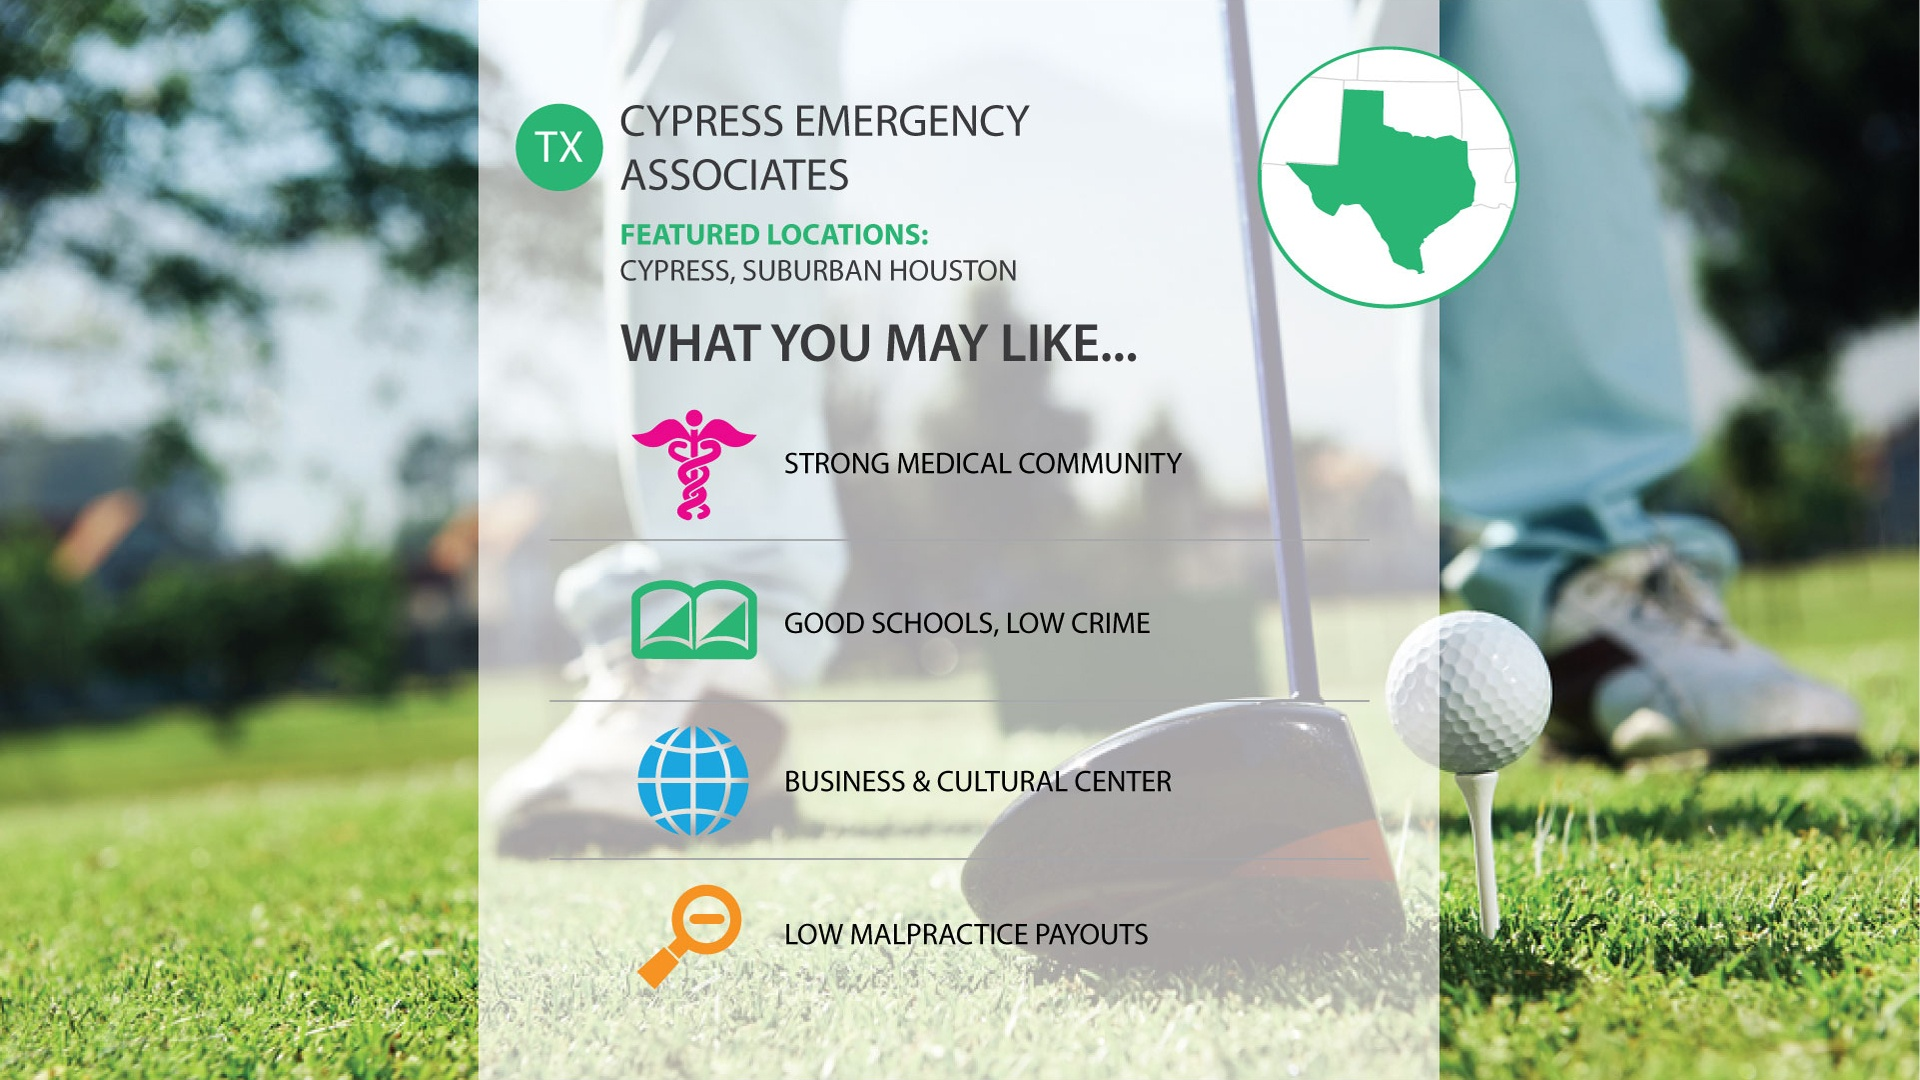 Cypress Emergency Associates emergency medicine job in texas